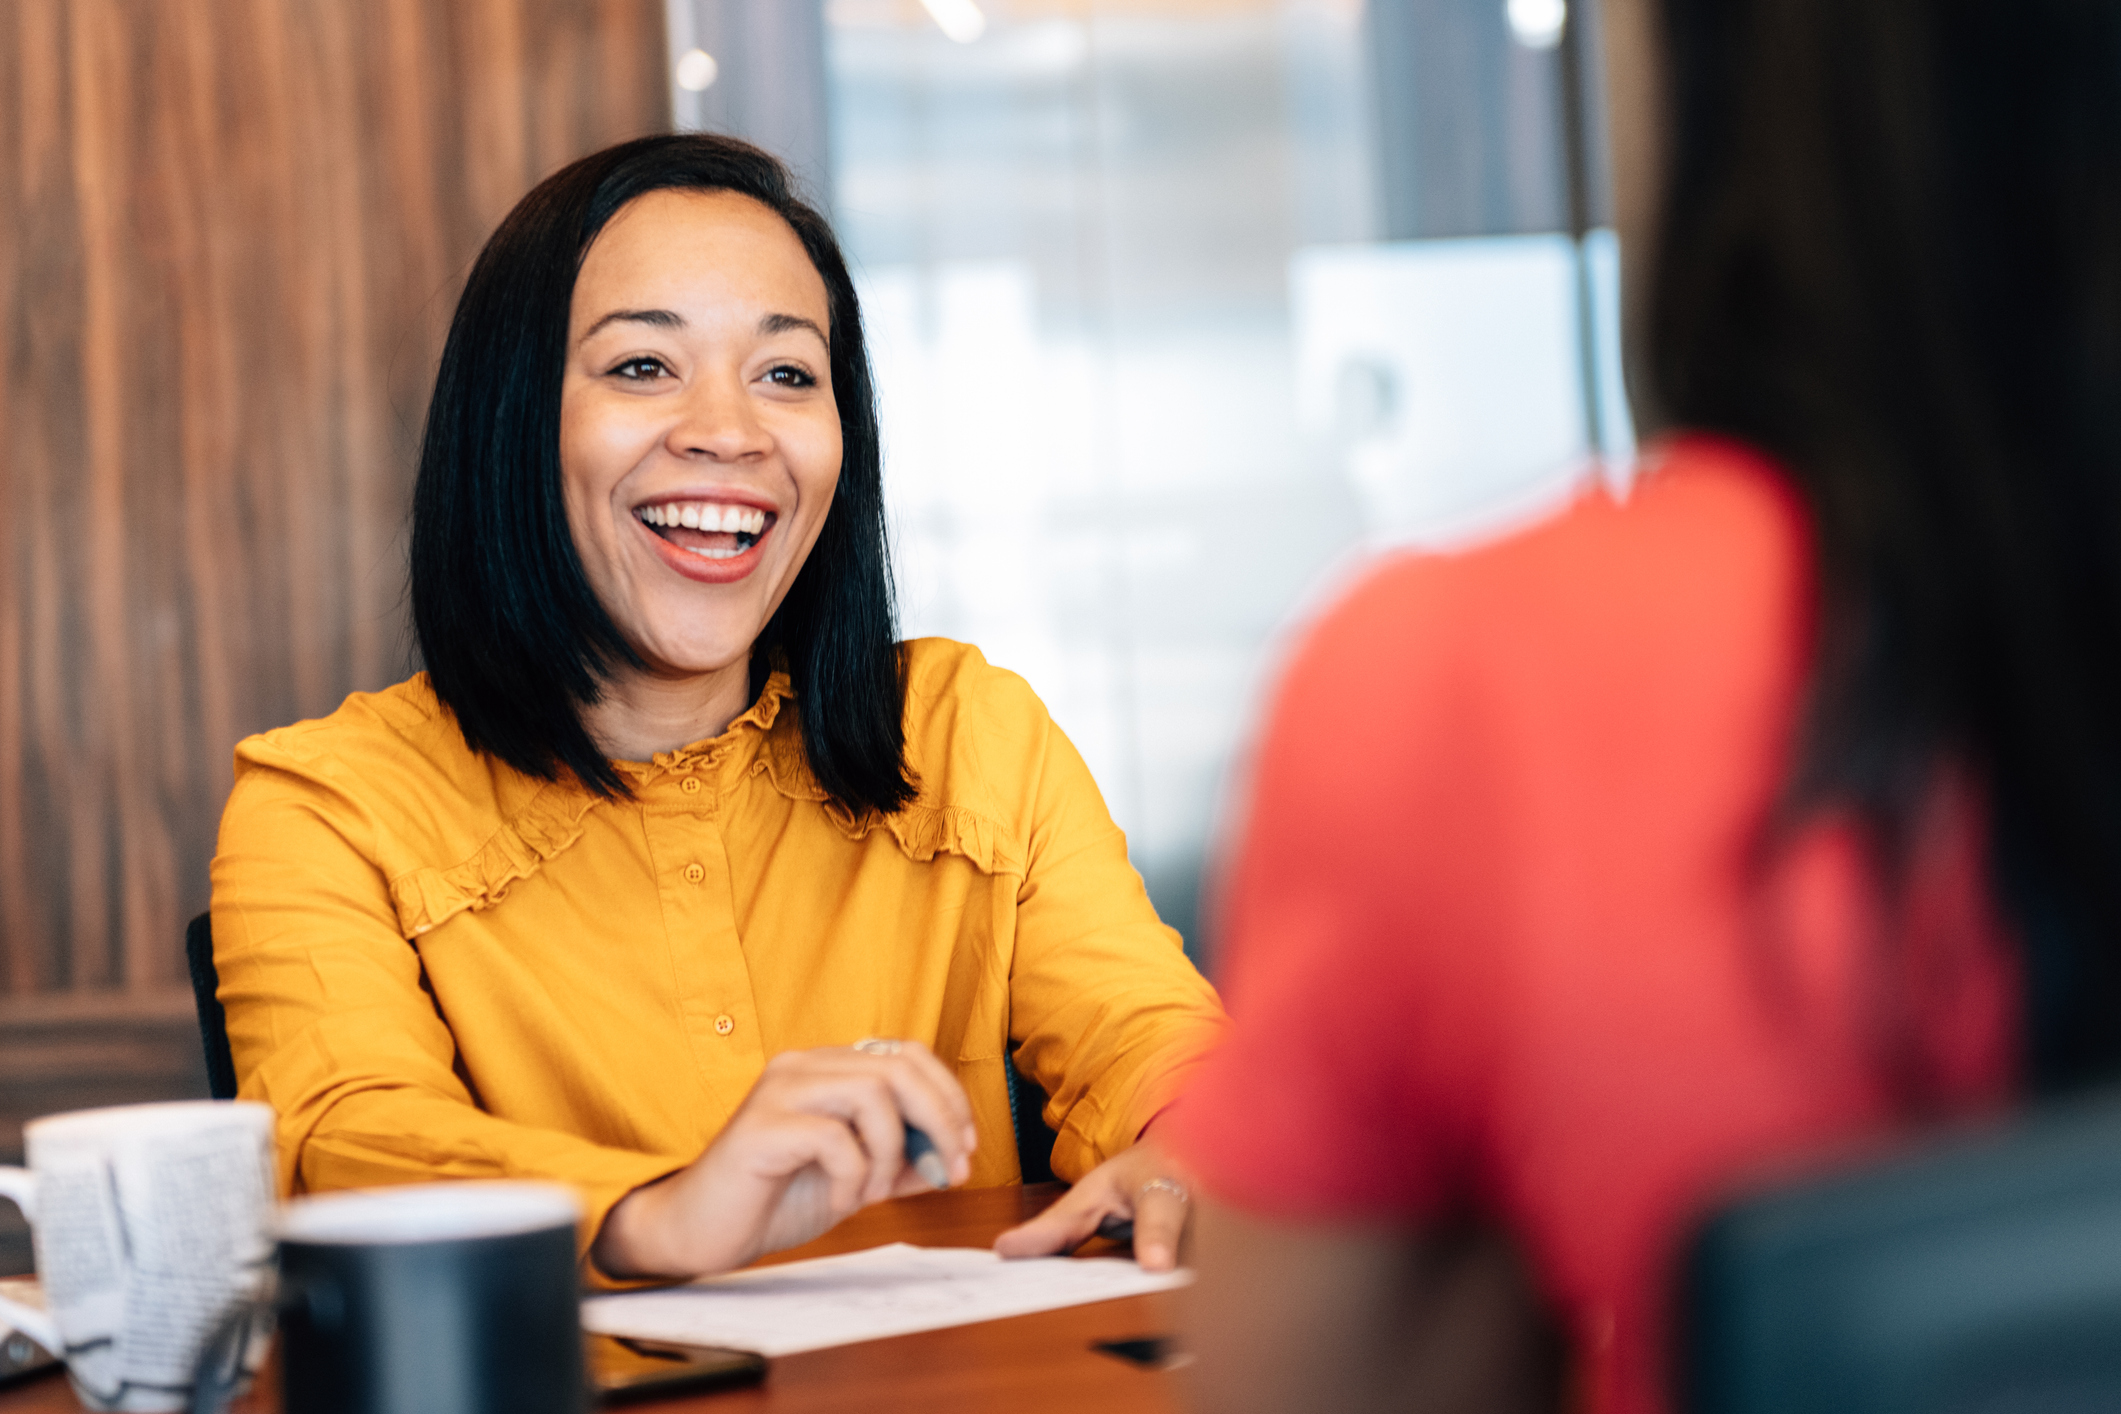 woman at desk smiling at another woman